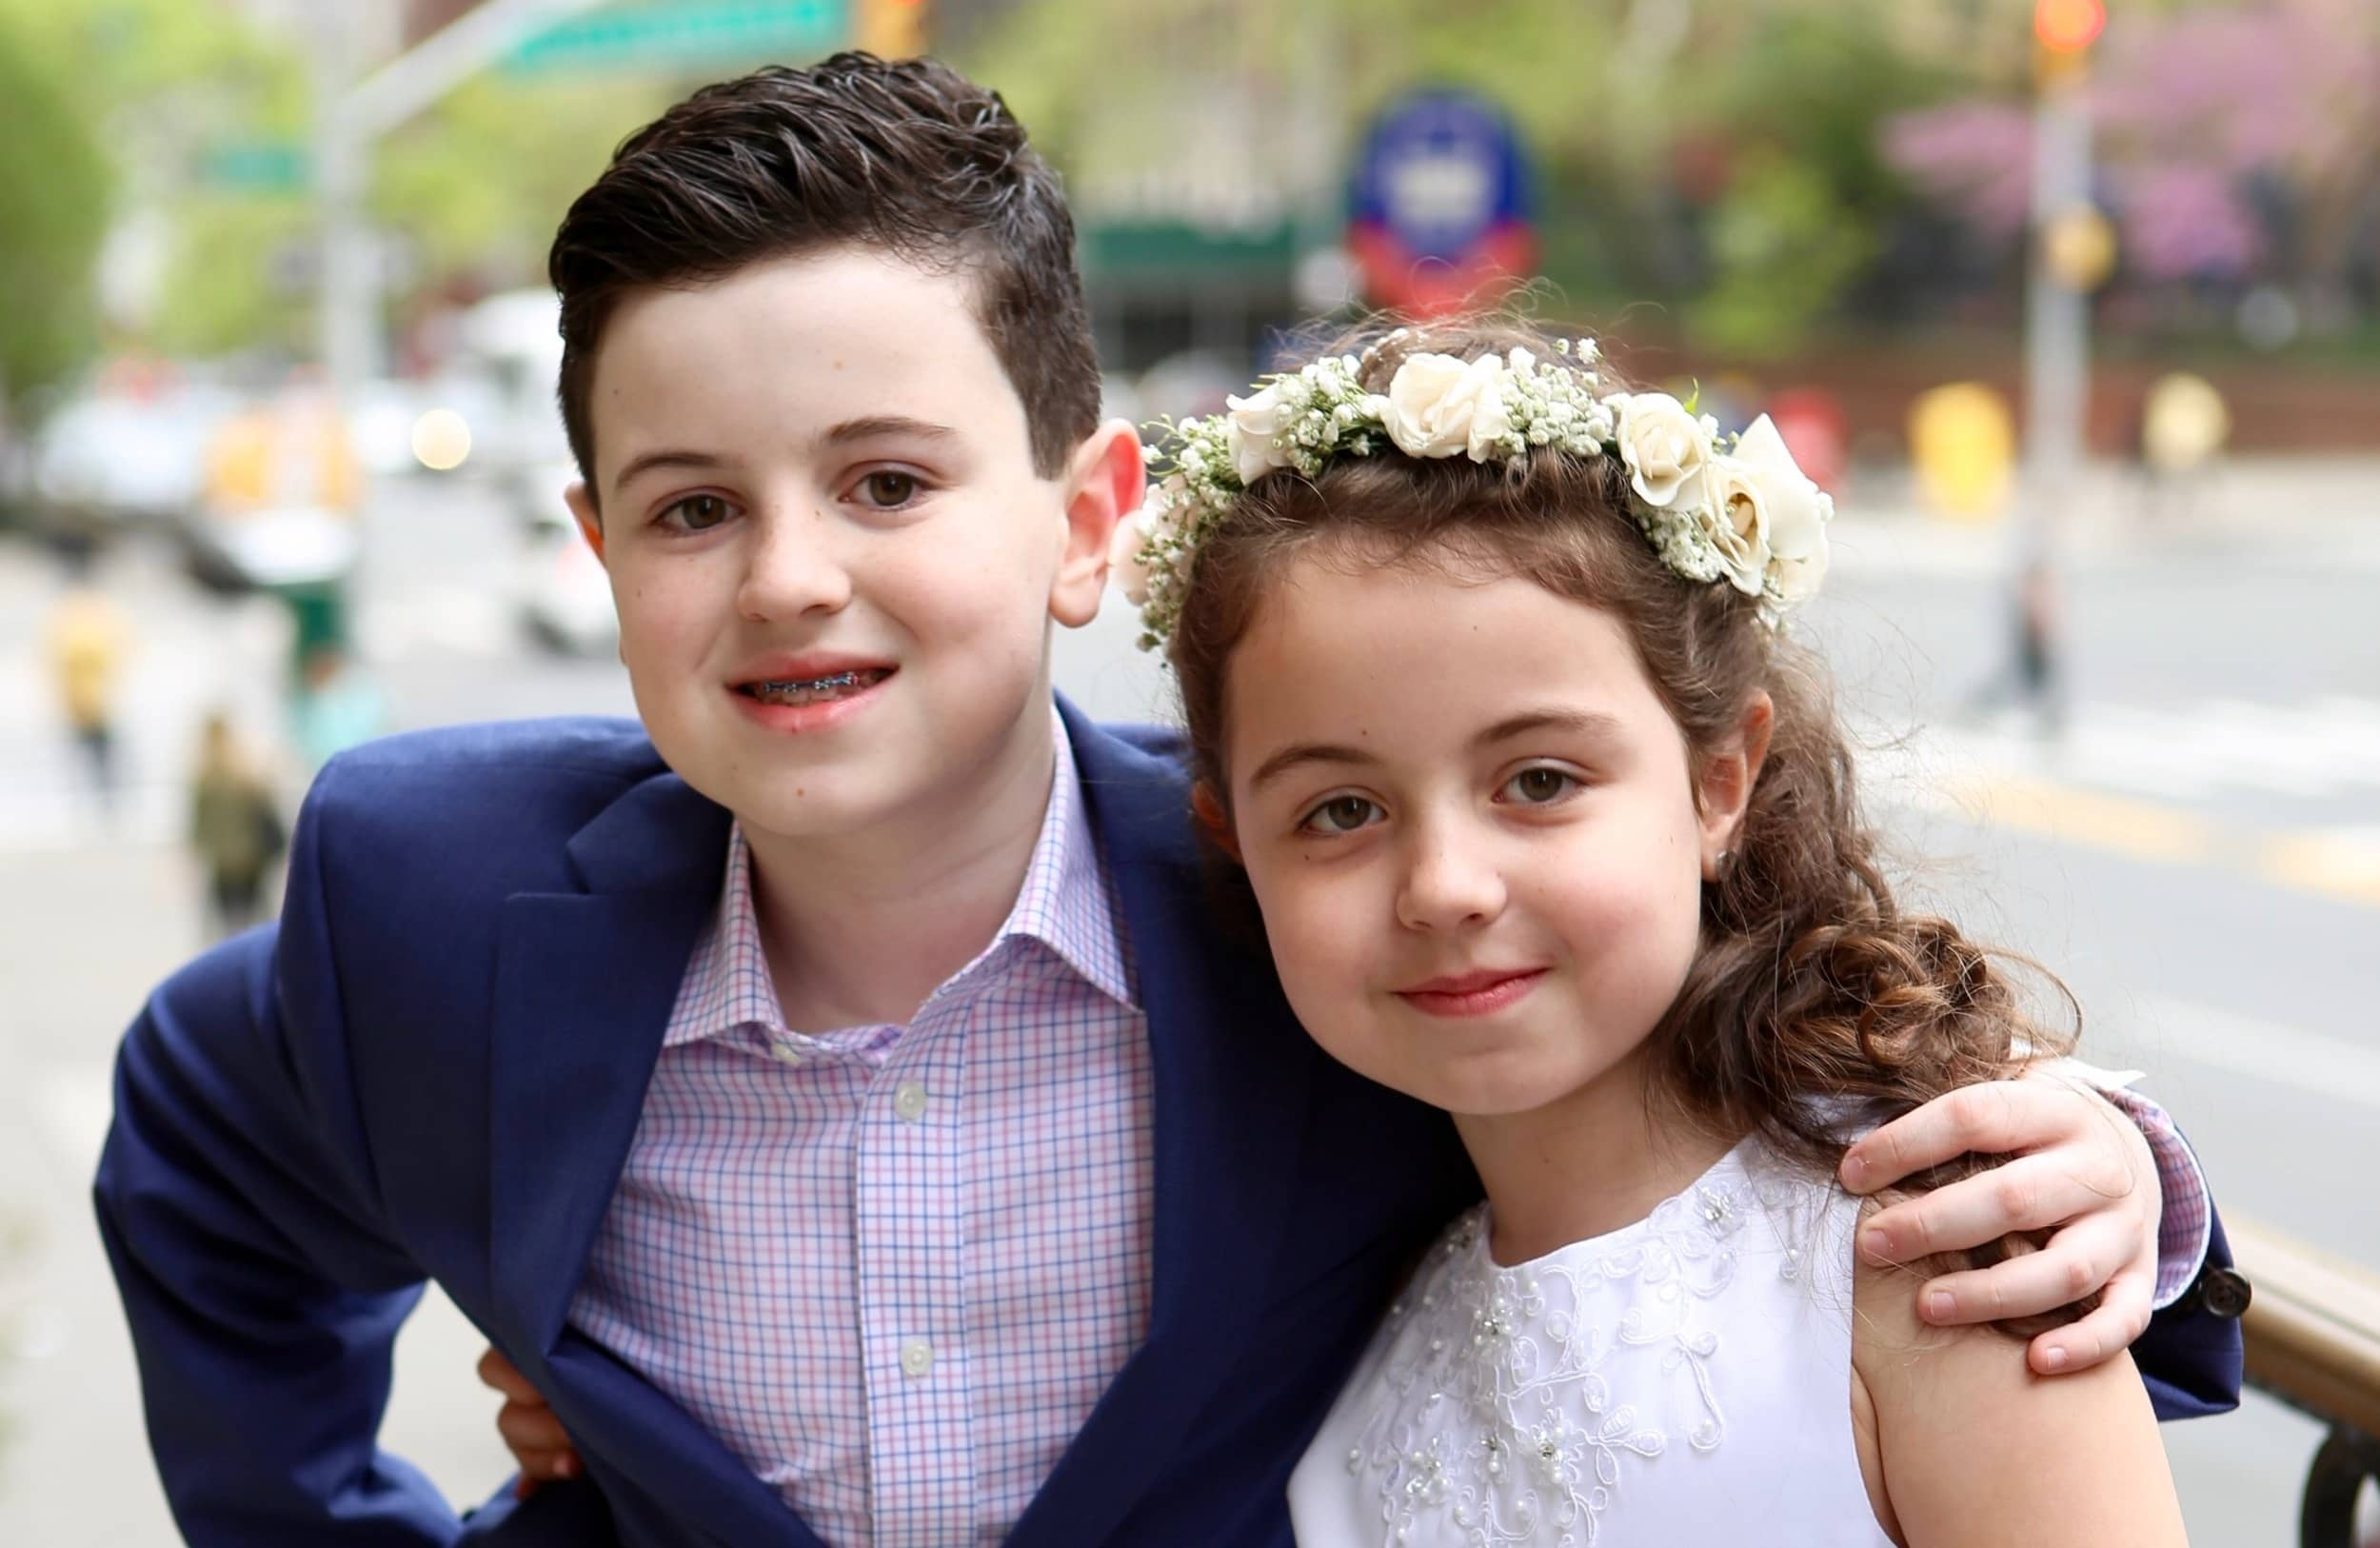 first-communion-kids-arms-around-st-francis-de-sales-church-new-york-city.jpg